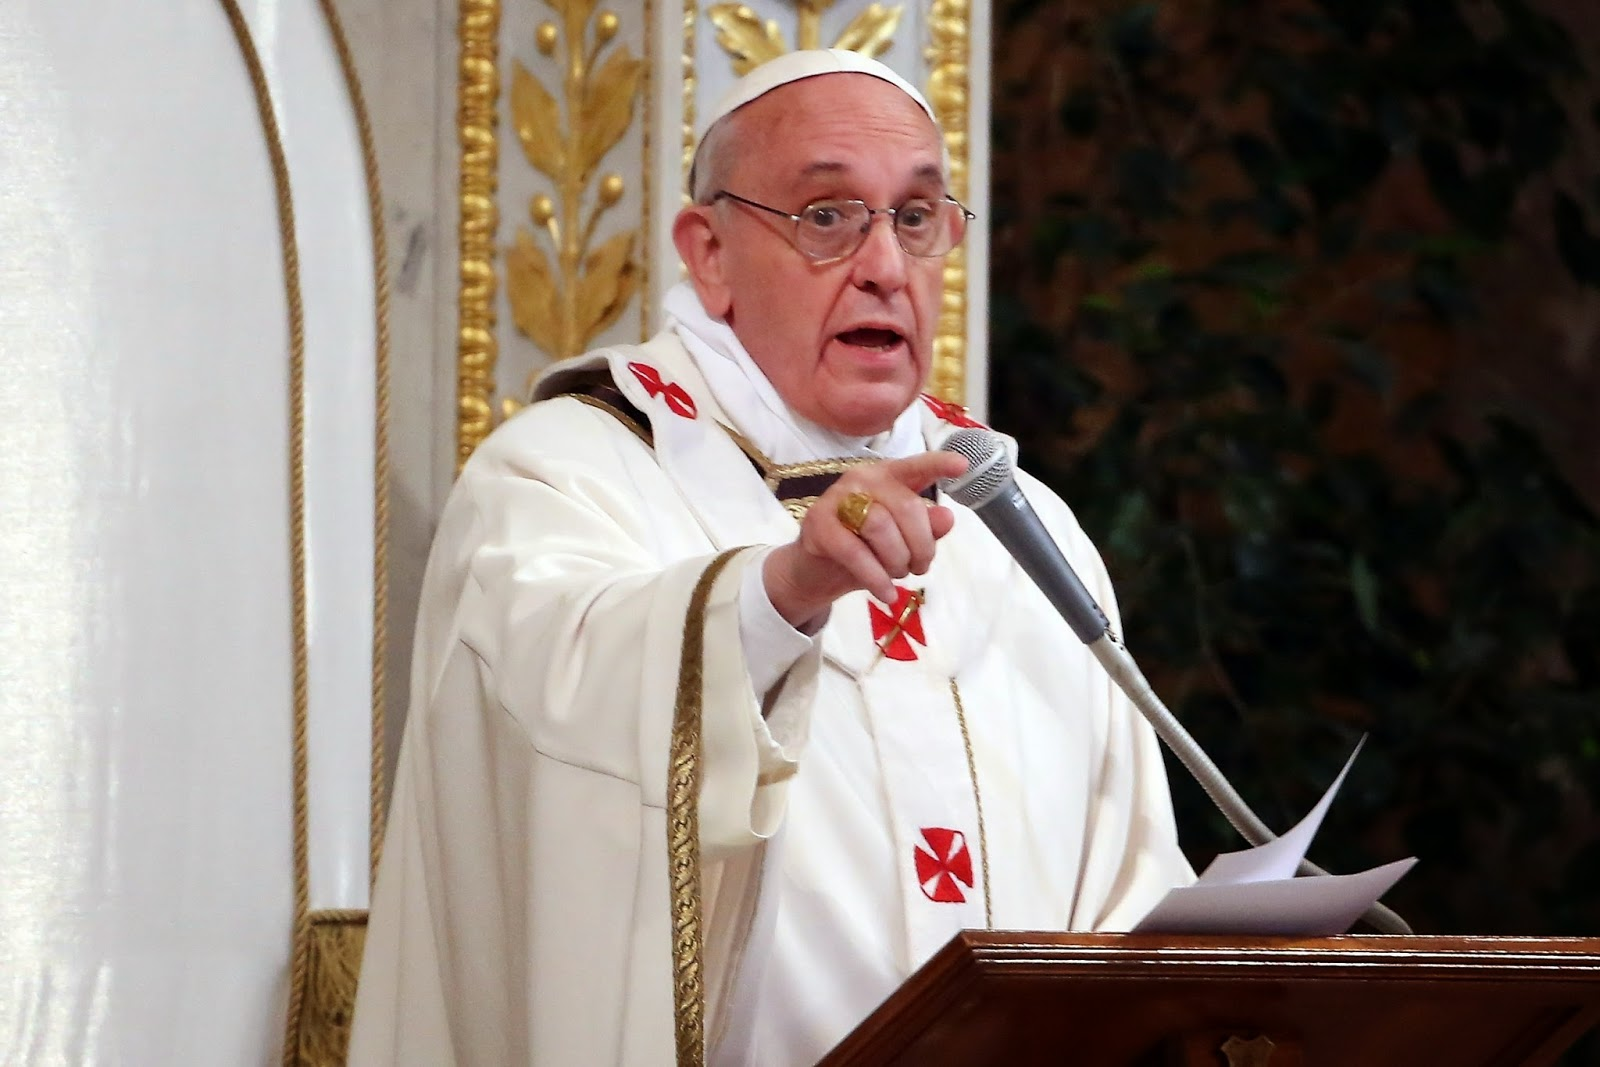 Shocker! Pope Calls Jesus A Liar! Pope Calls Bible A Lie!